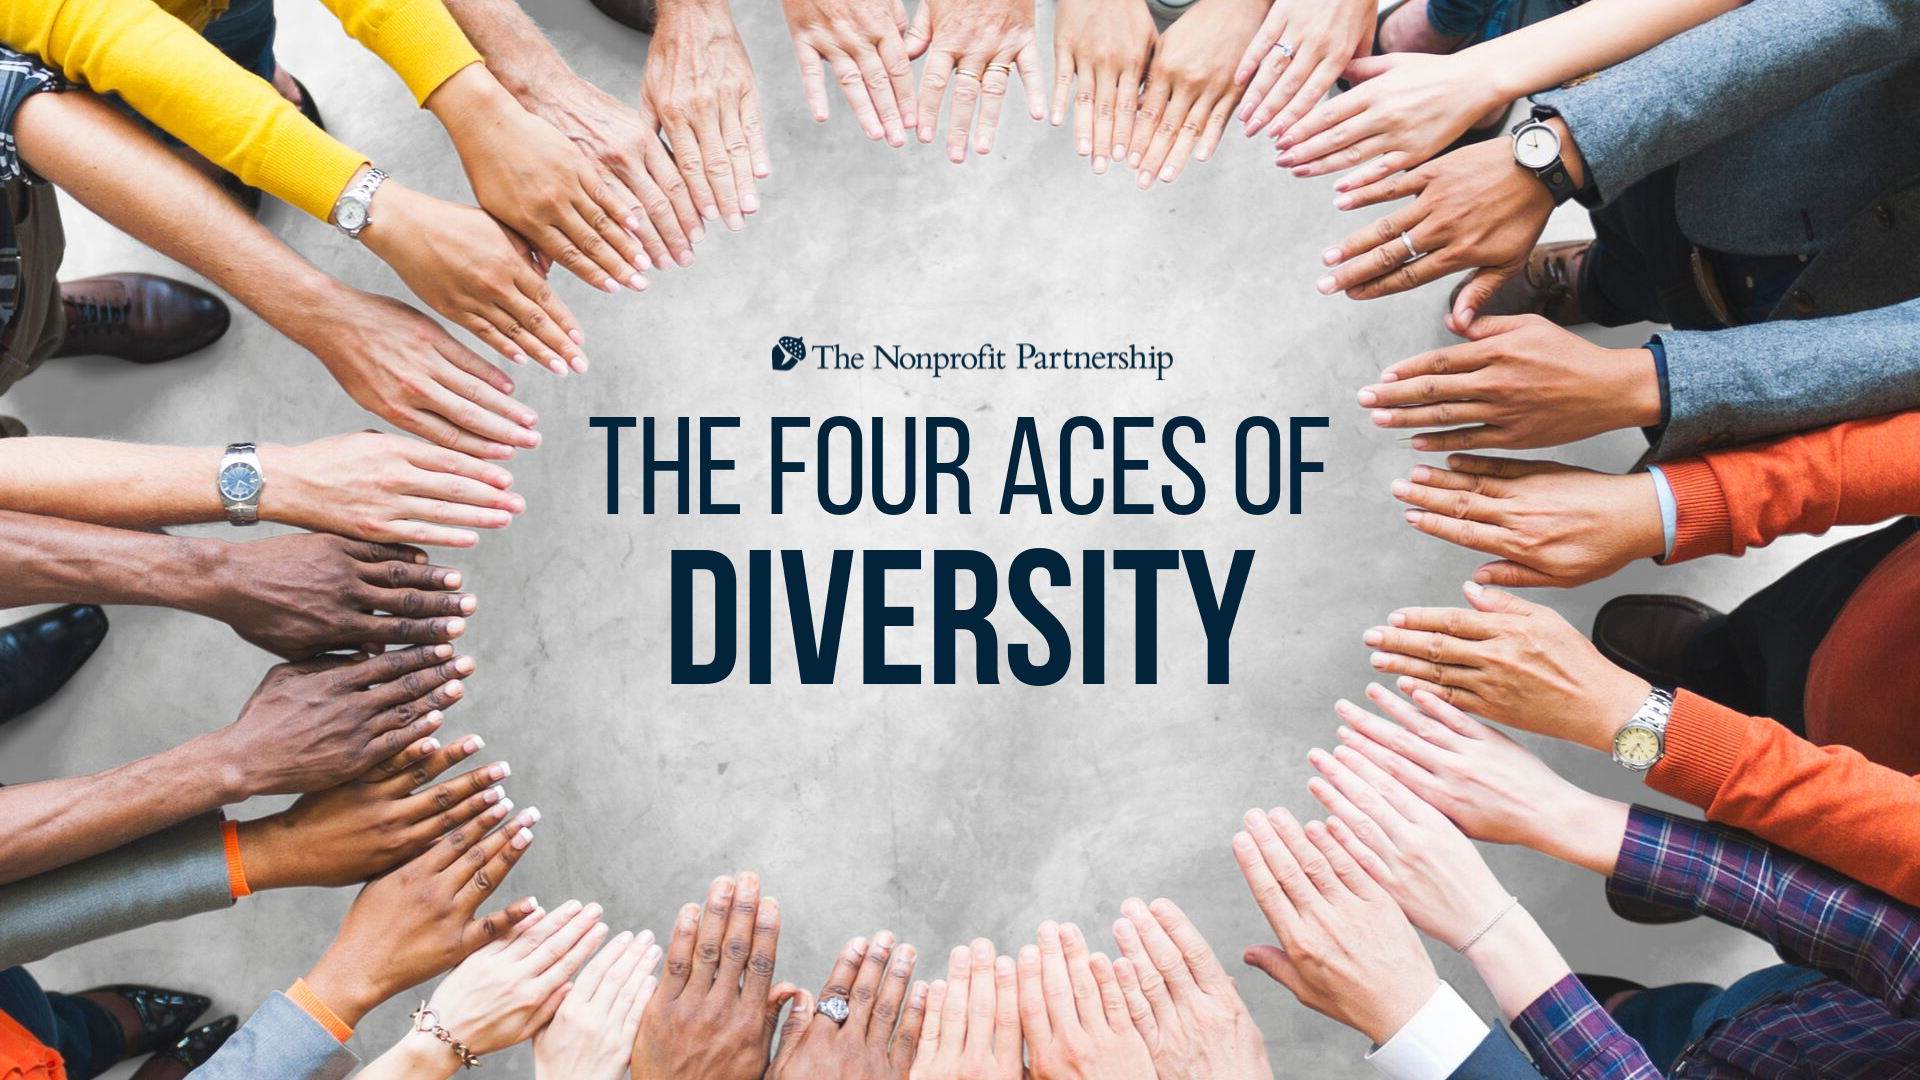 The Four Aces of Diversity with Penn State Behrend